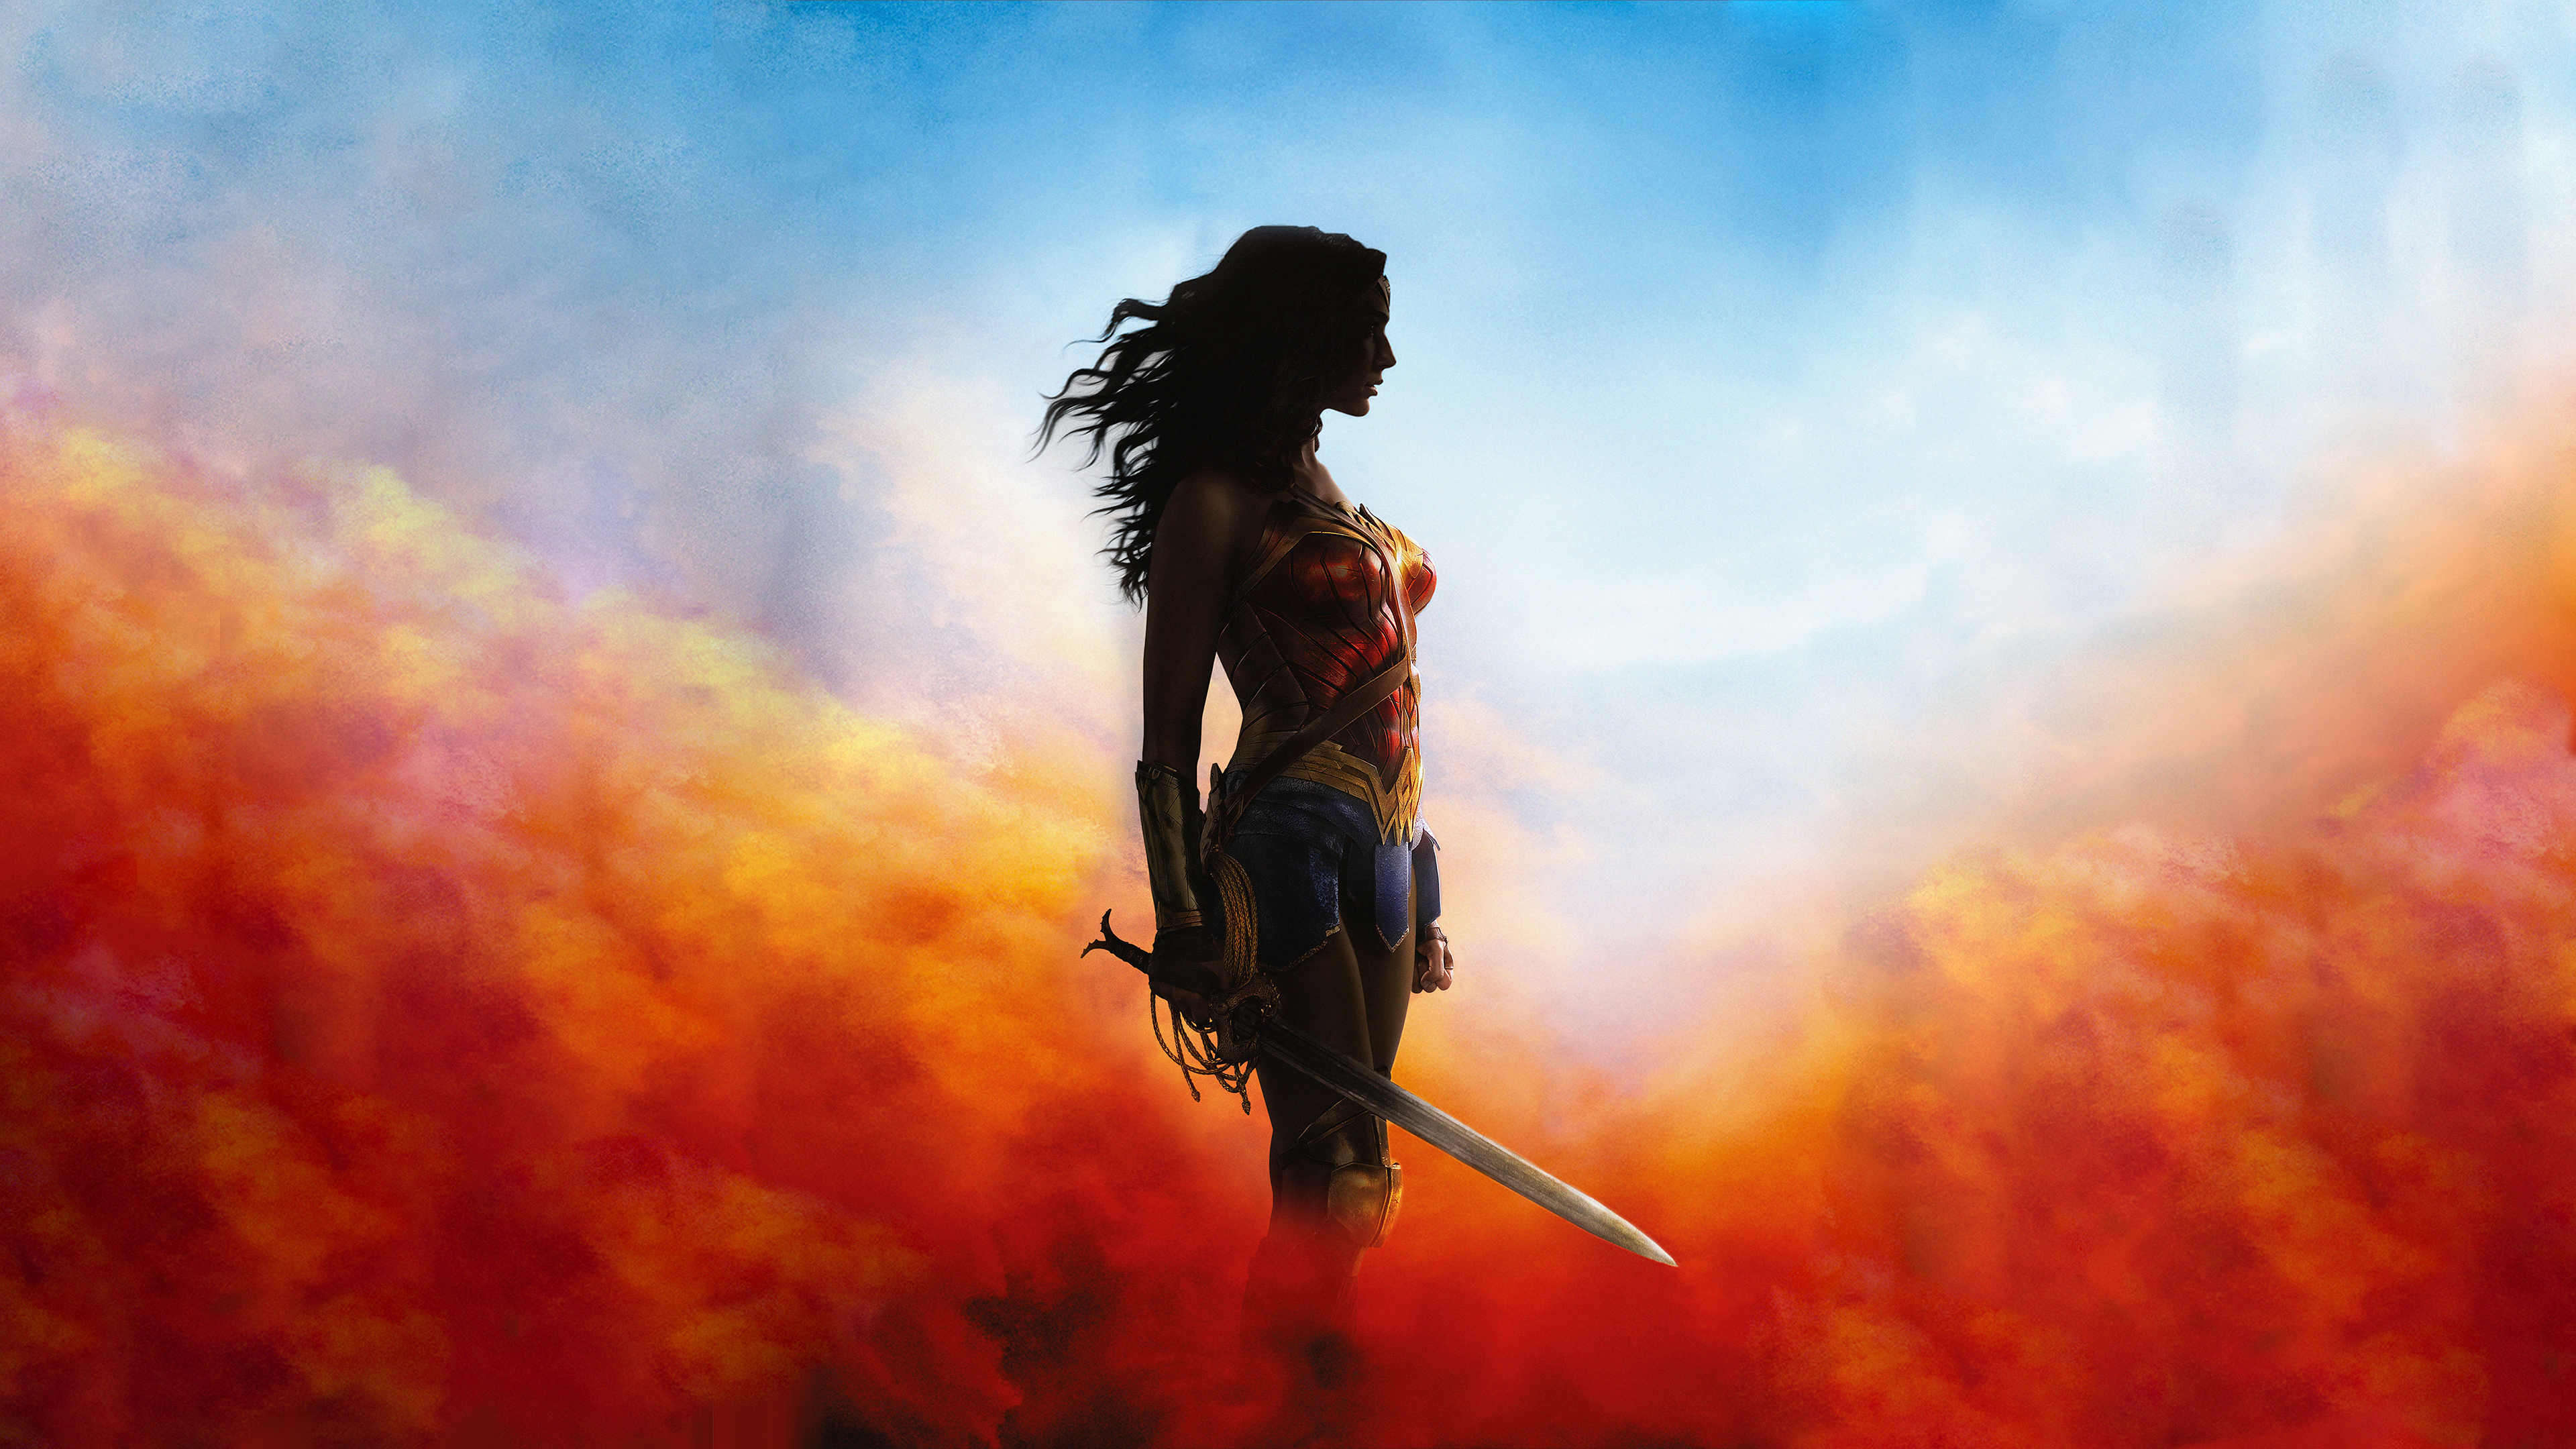 Wallpaper Wonder Woman 2017 Movies 6723: 42 Steely Facts About Wonder Woman